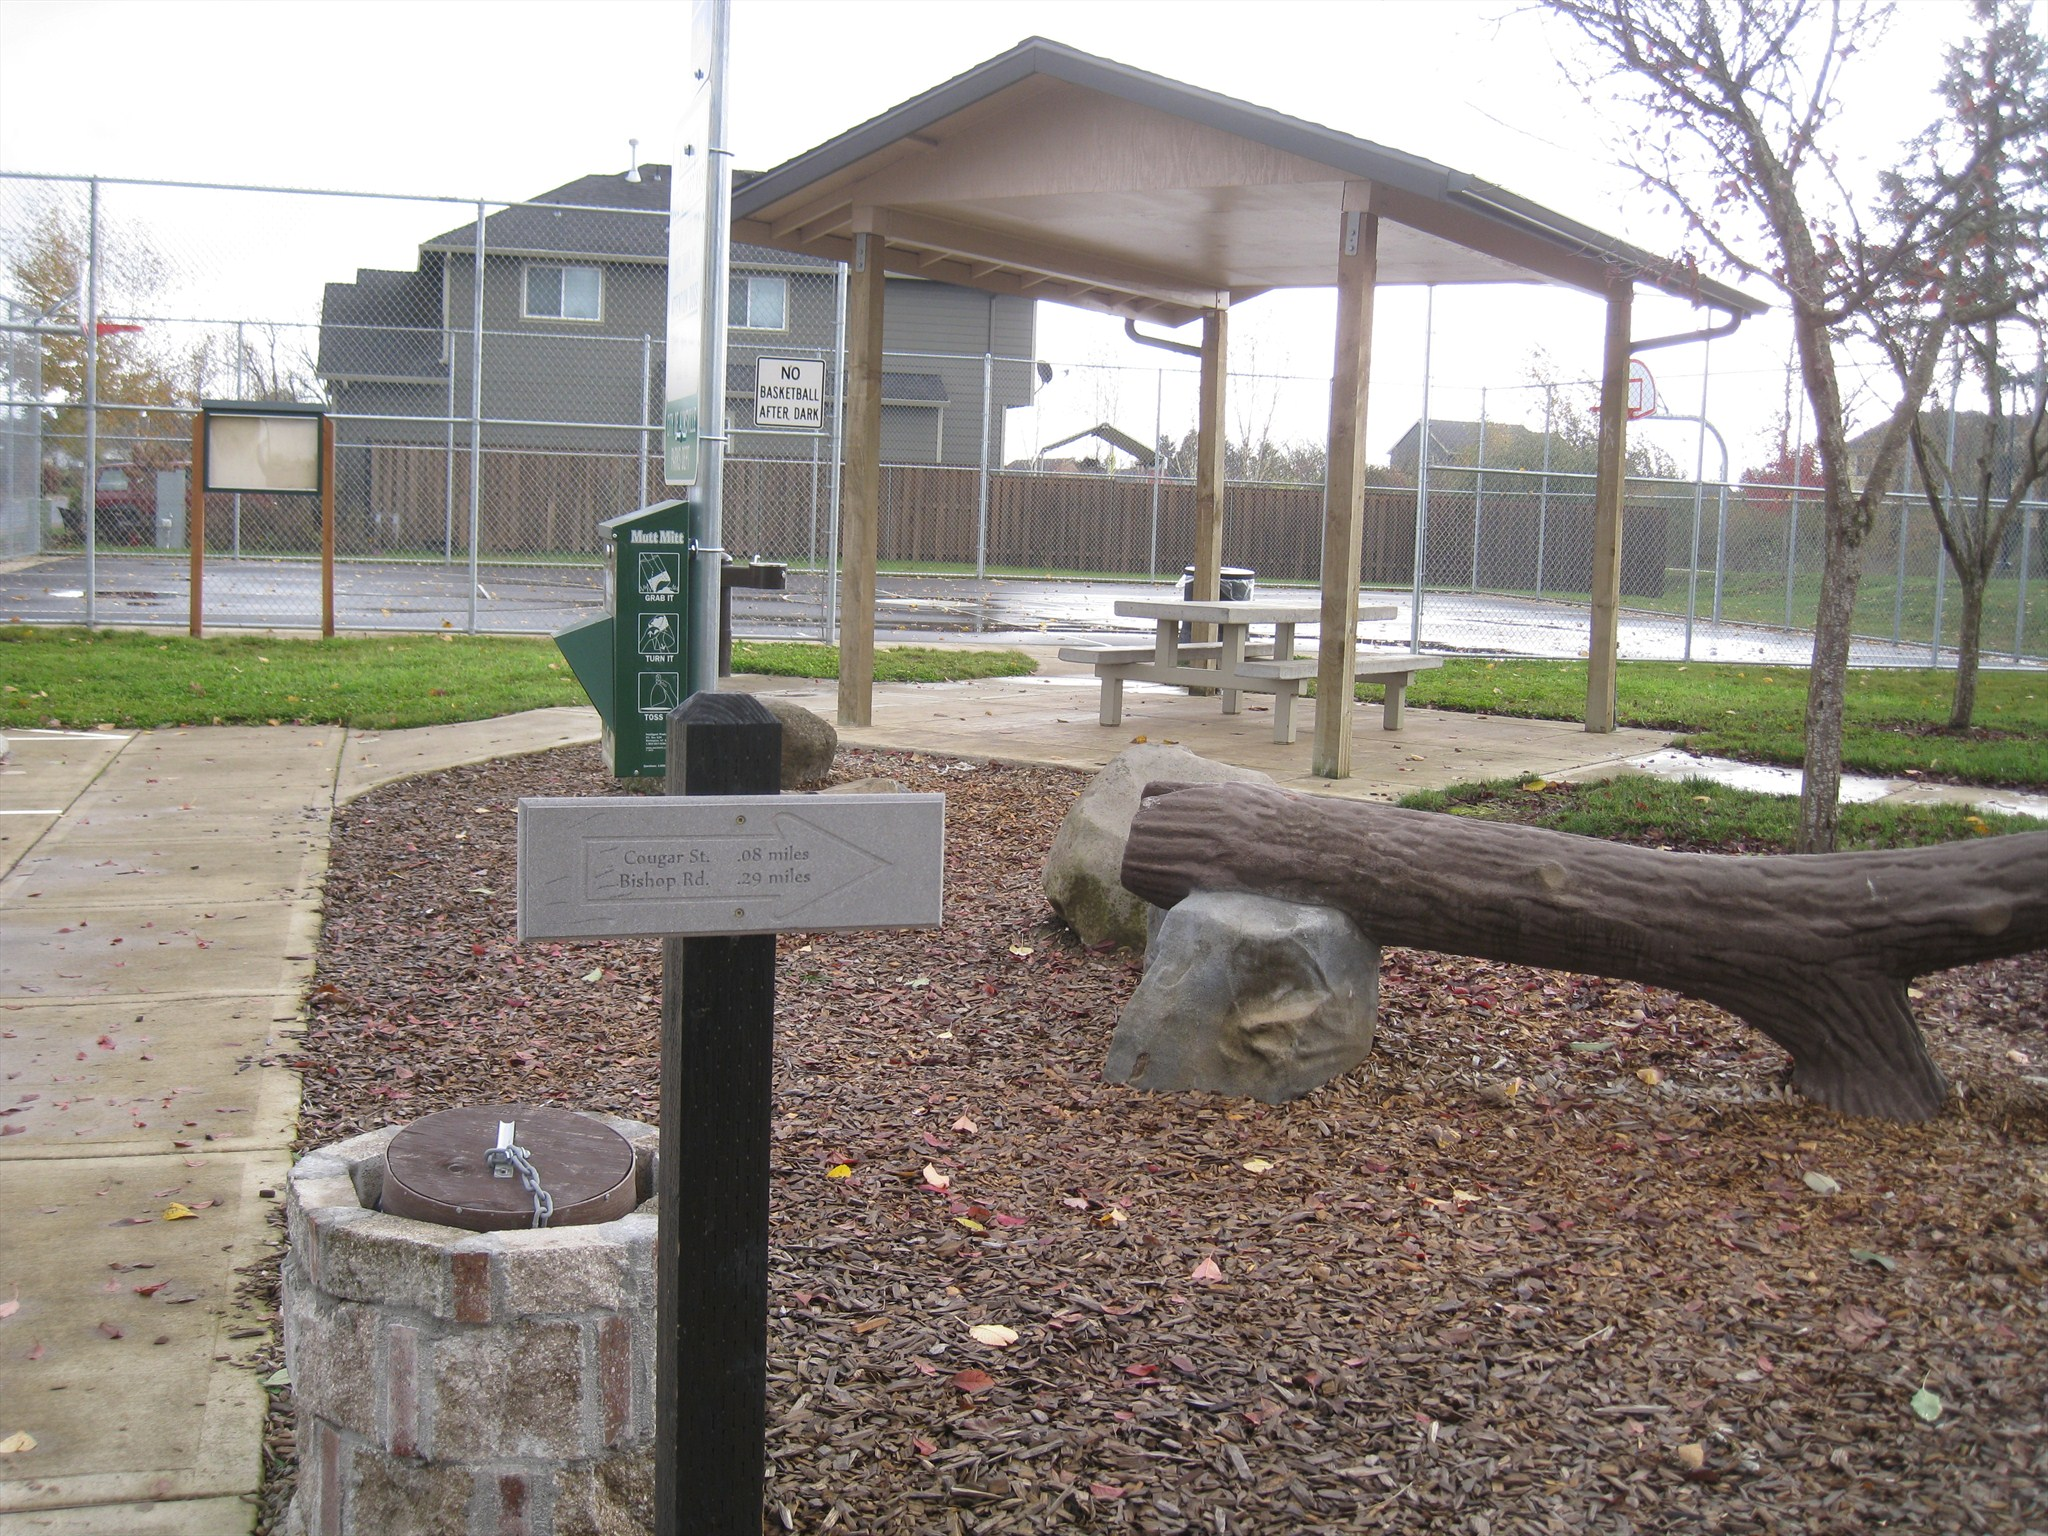 aumsville cougars dating site They meet regularly on the second monday of the month, and generally   highberger park & greenway, 200 cougar street, is adjacent to.